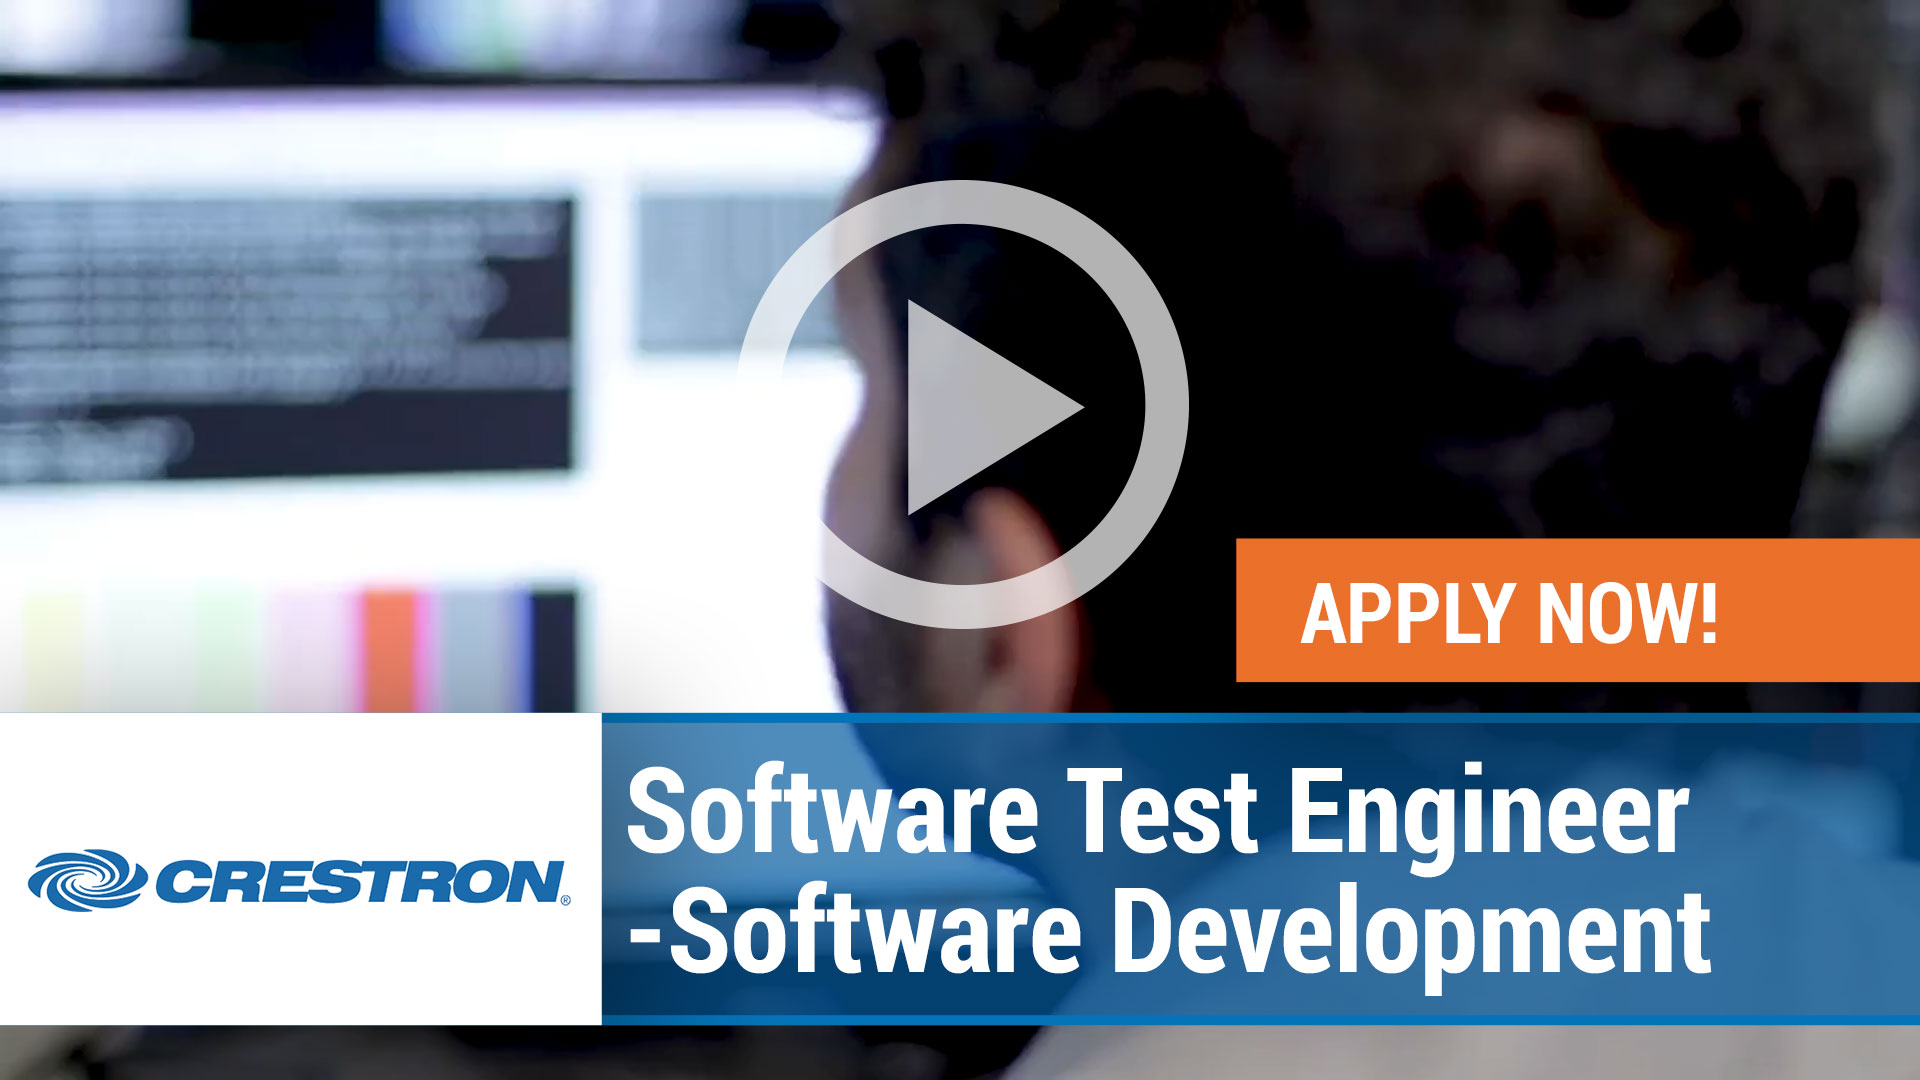 Watch our careers video for available job opening Software Test Engineer – Software Development in Rockleigh, New Jersey